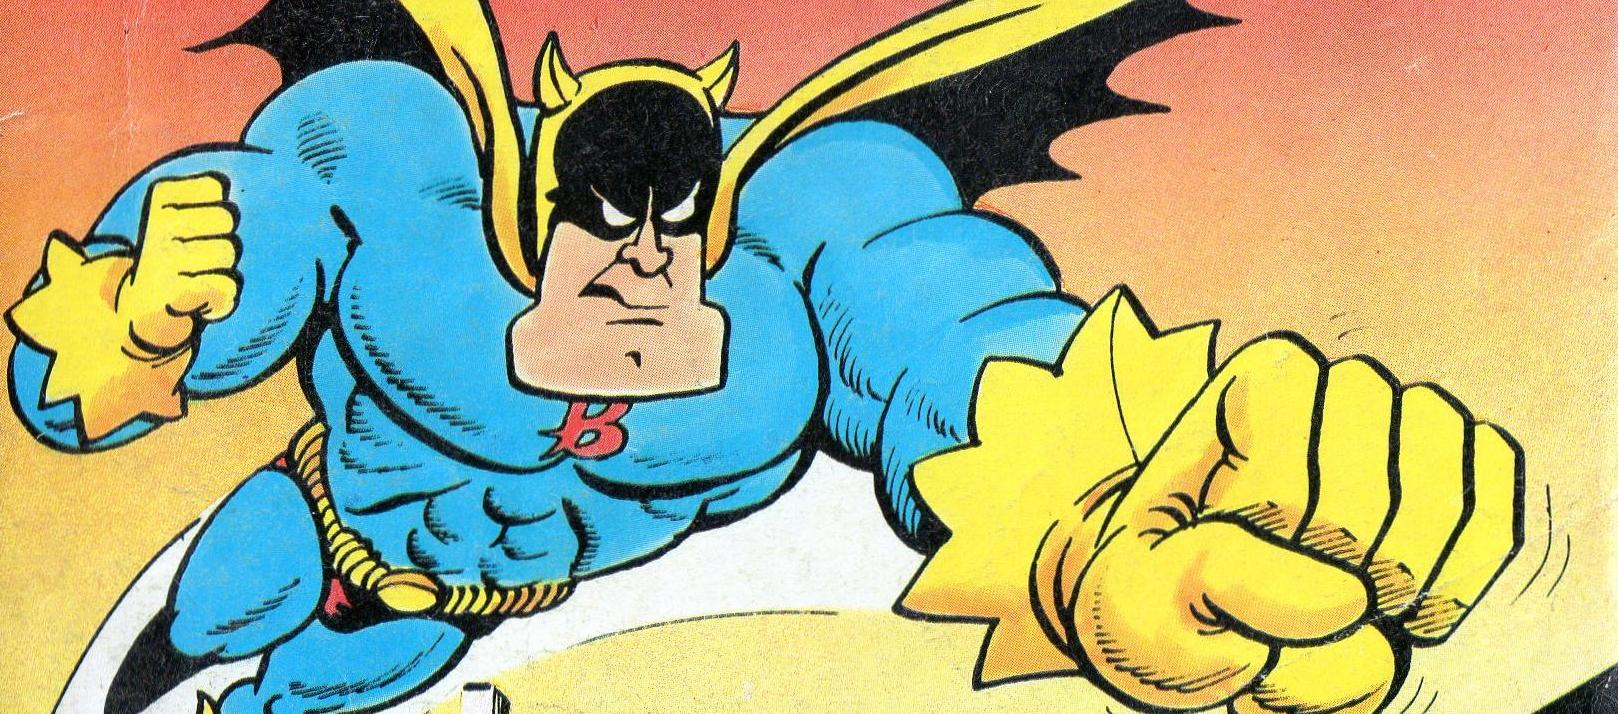 Bananaman Backgrounds, Compatible - PC, Mobile, Gadgets| 1619x714 px